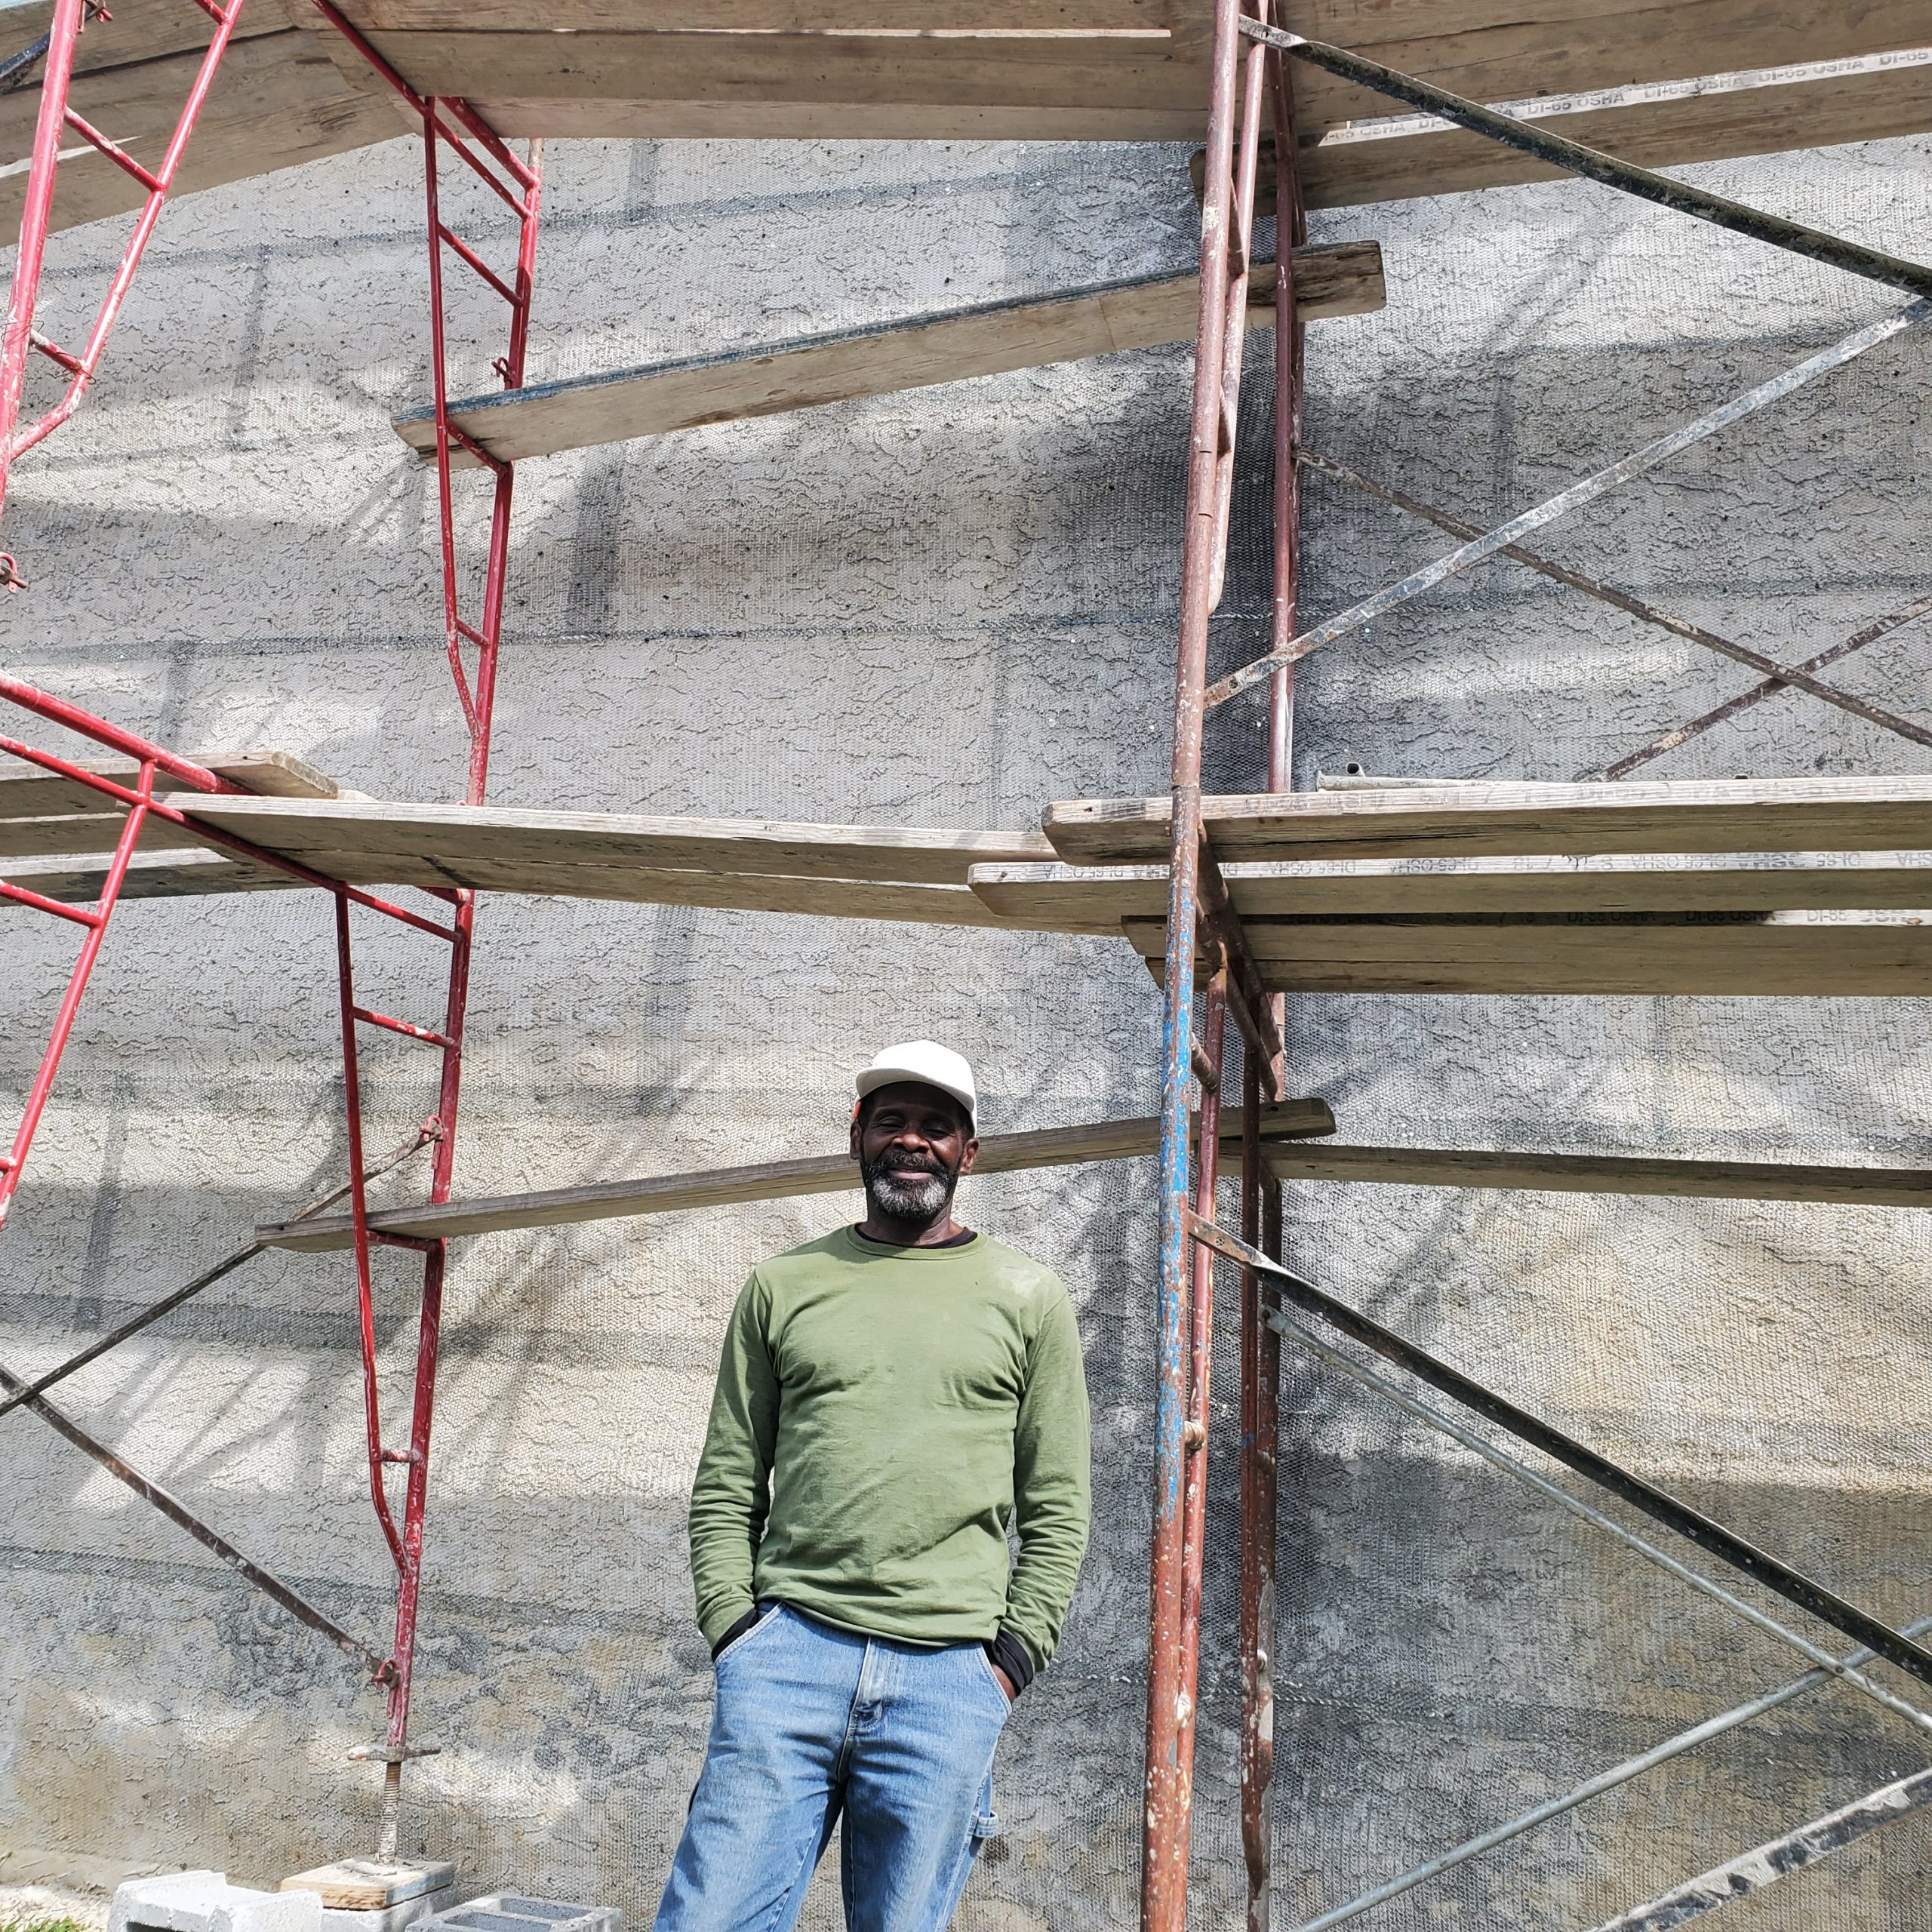 Rudy the Stucco Guy in front of the mural wall with a scaffold behind him.